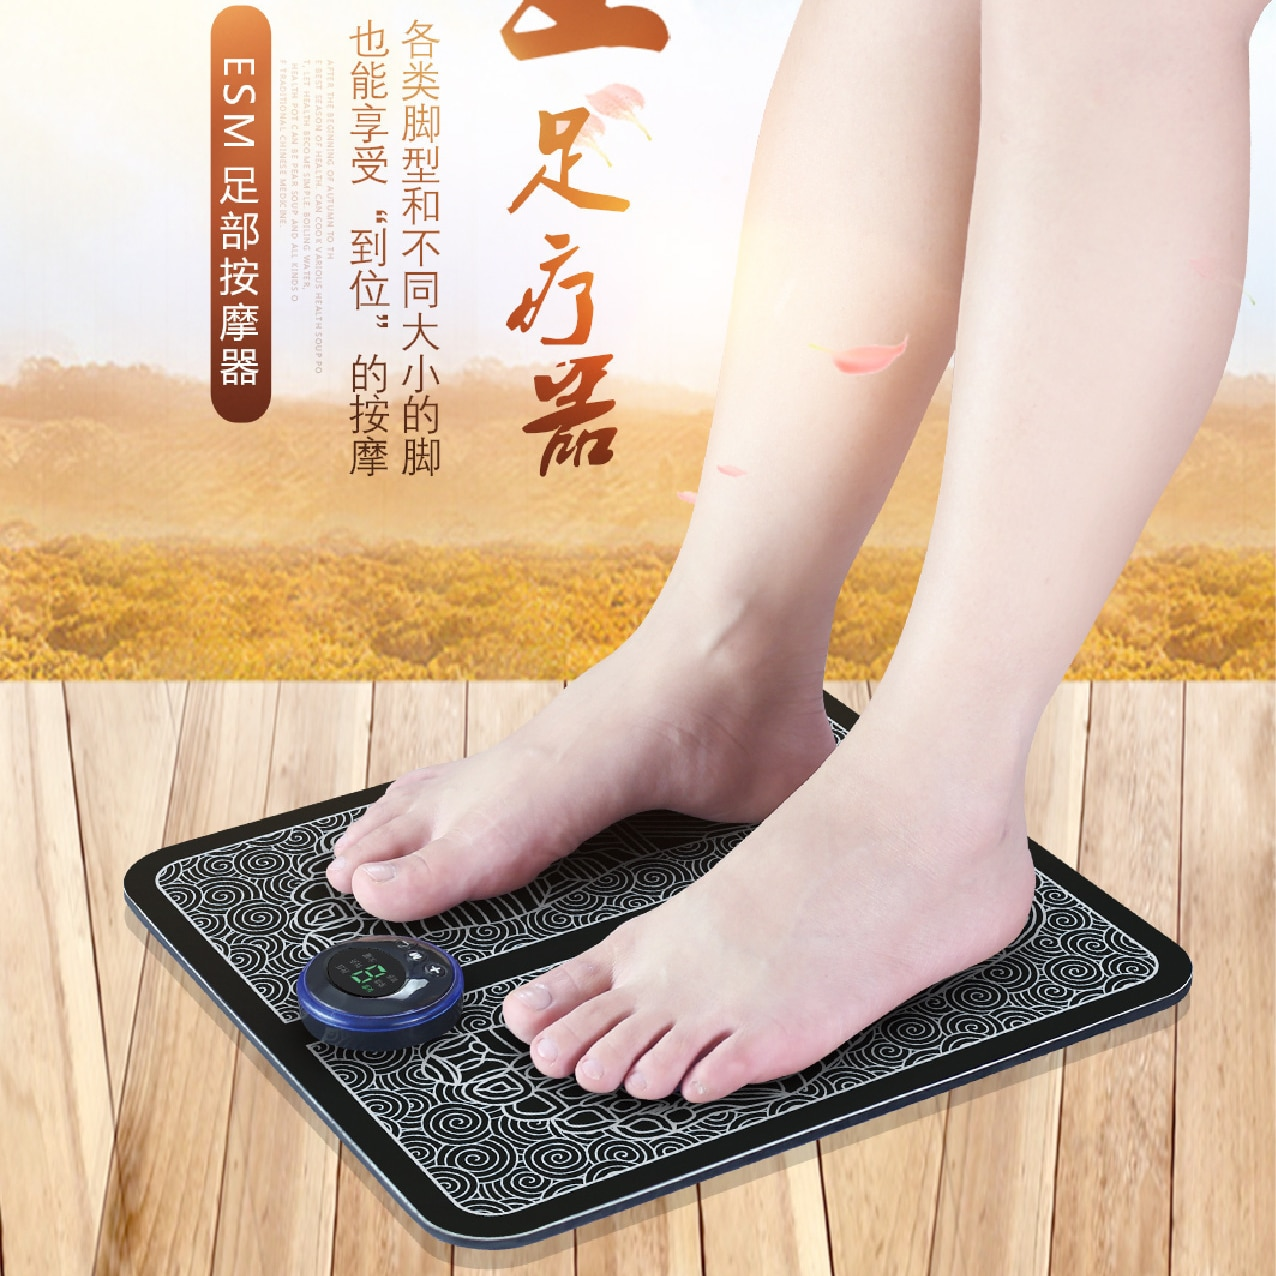 EMS physiotherapy pedicure Pulse foot foot massage pad machine USB charging foot foot massager hanriver multifunctional physical therapy electrotherapy acupoints foot foot massager household 220 v pedicure machine